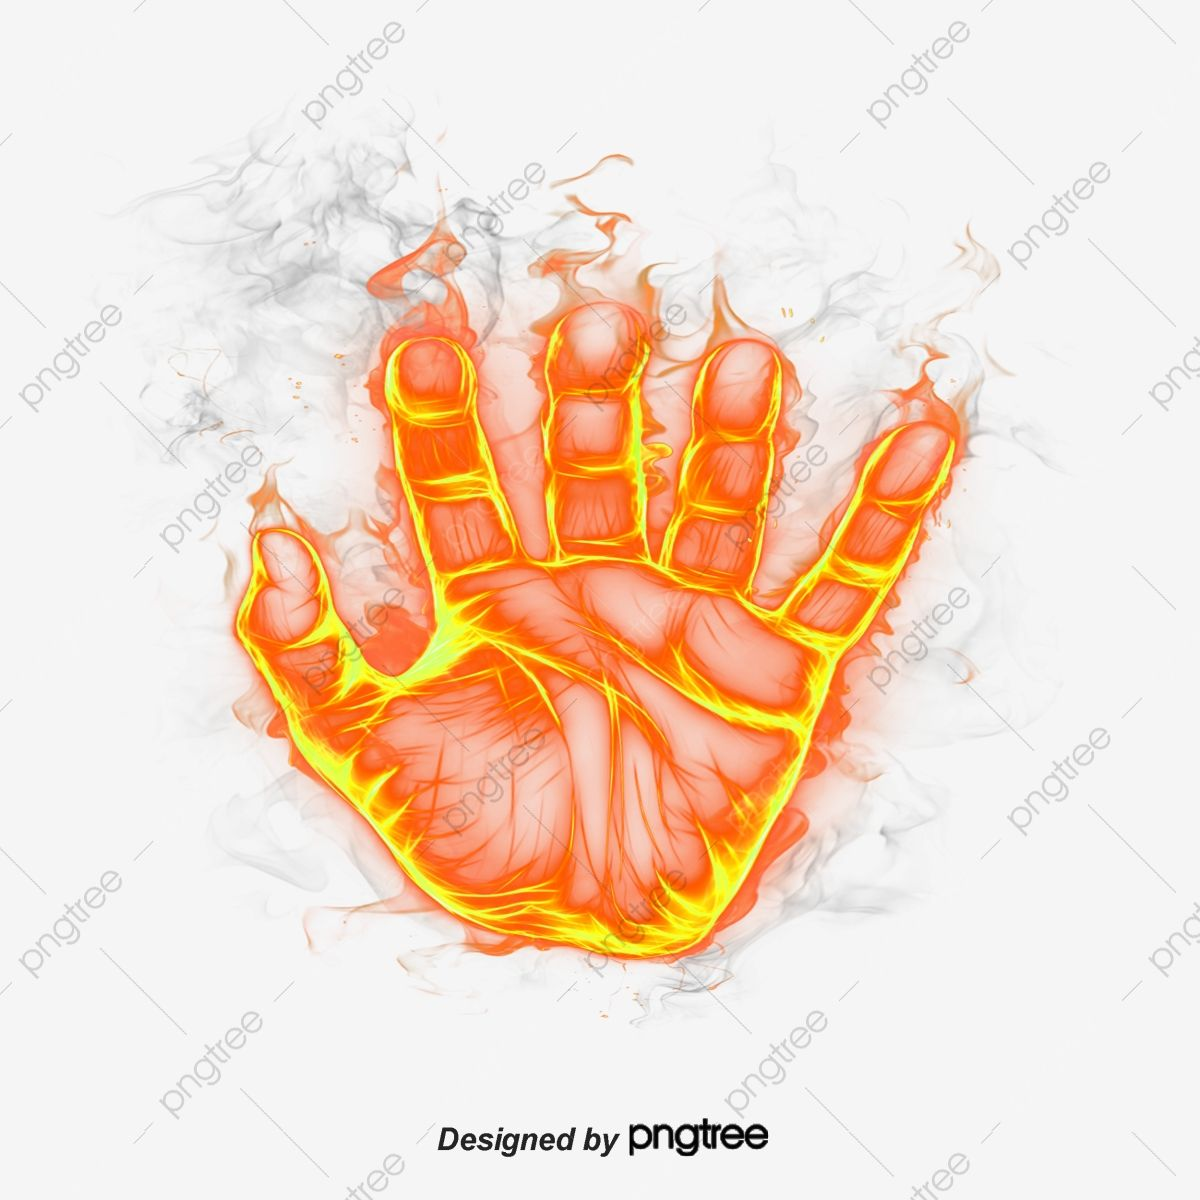 Flame Hand Flame Clipart Flame Flames Png Transparent Image And Clipart For Free Download In 2020 Clip Art Photo Editing Tutorial Love Png Fire flame, flame hand, flaming hand illustration, effect, orange, explosion png. www pinterest co kr